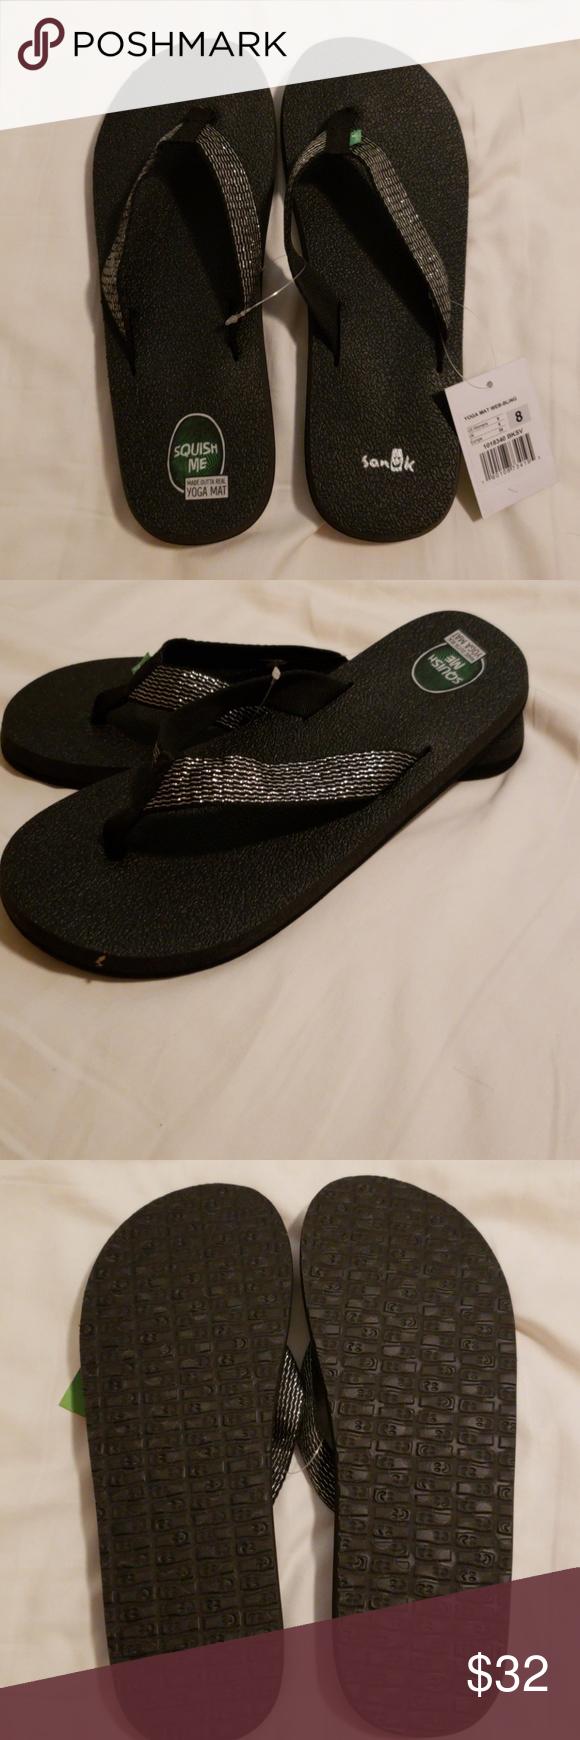 bfca5968bc8d8e Sanuk Yoga Mat Web Bling Flip Flops NWT. Sanuk Yoga Mat Web Bling Flip  Flops. Black Silver. No Trades. Lowball offers will be ignored or declined.